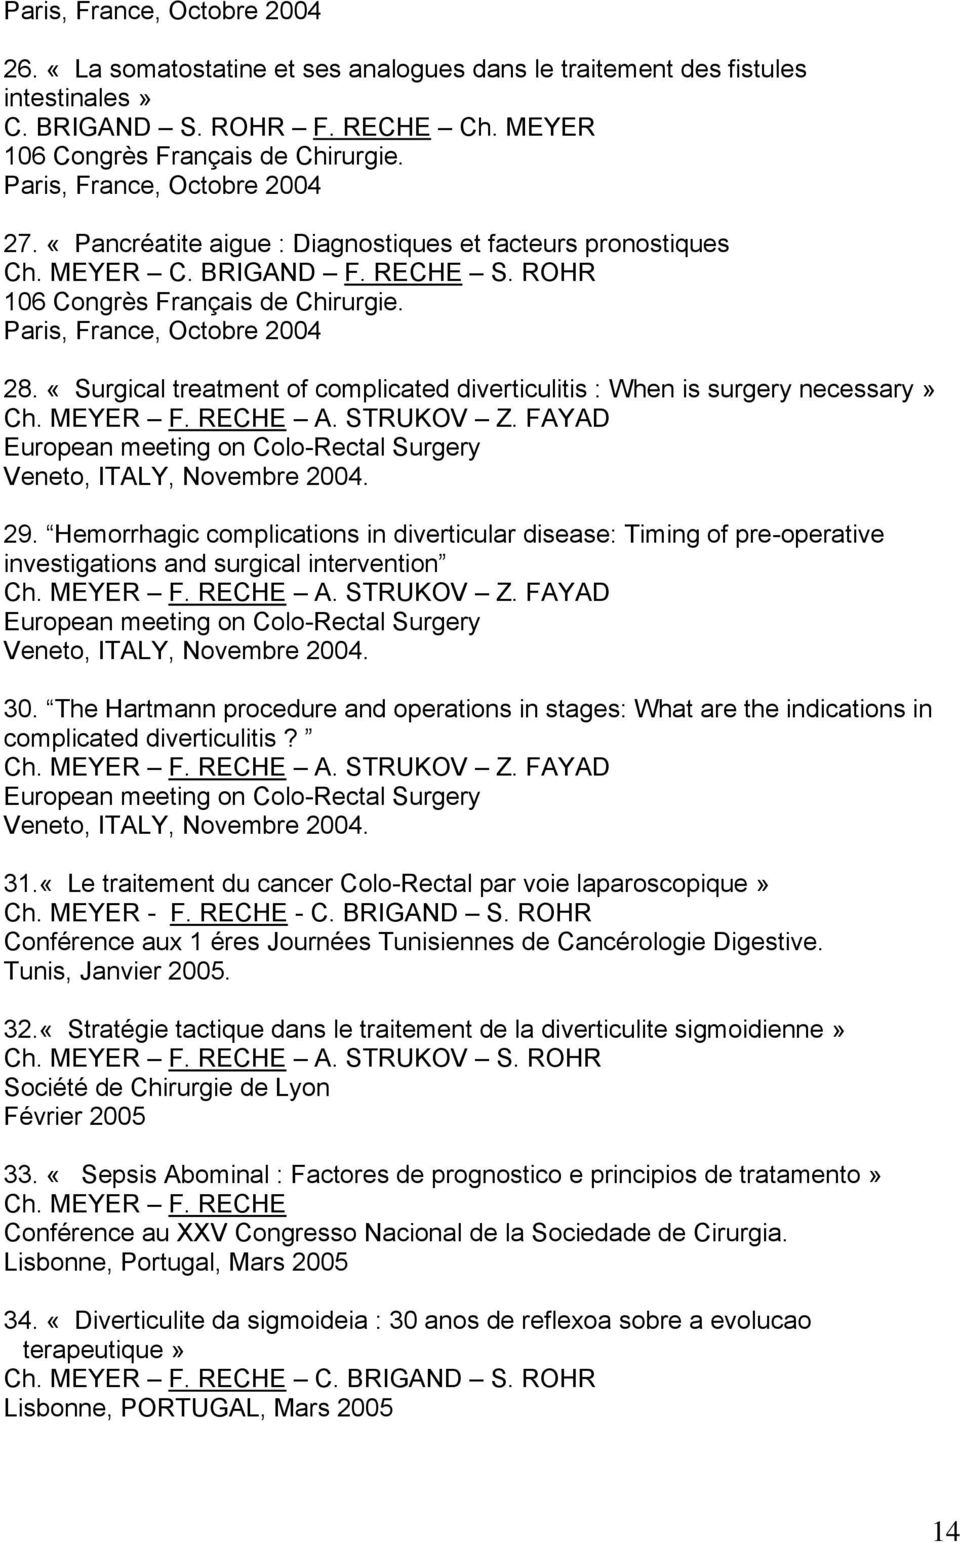 «Surgical treatment of complicated diverticulitis : When is surgery necessary» Ch. MEYER A. STRUKOV Z. FAYAD European meeting on Colo-Rectal Surgery Veneto, ITALY, Novembre 2004. 29.